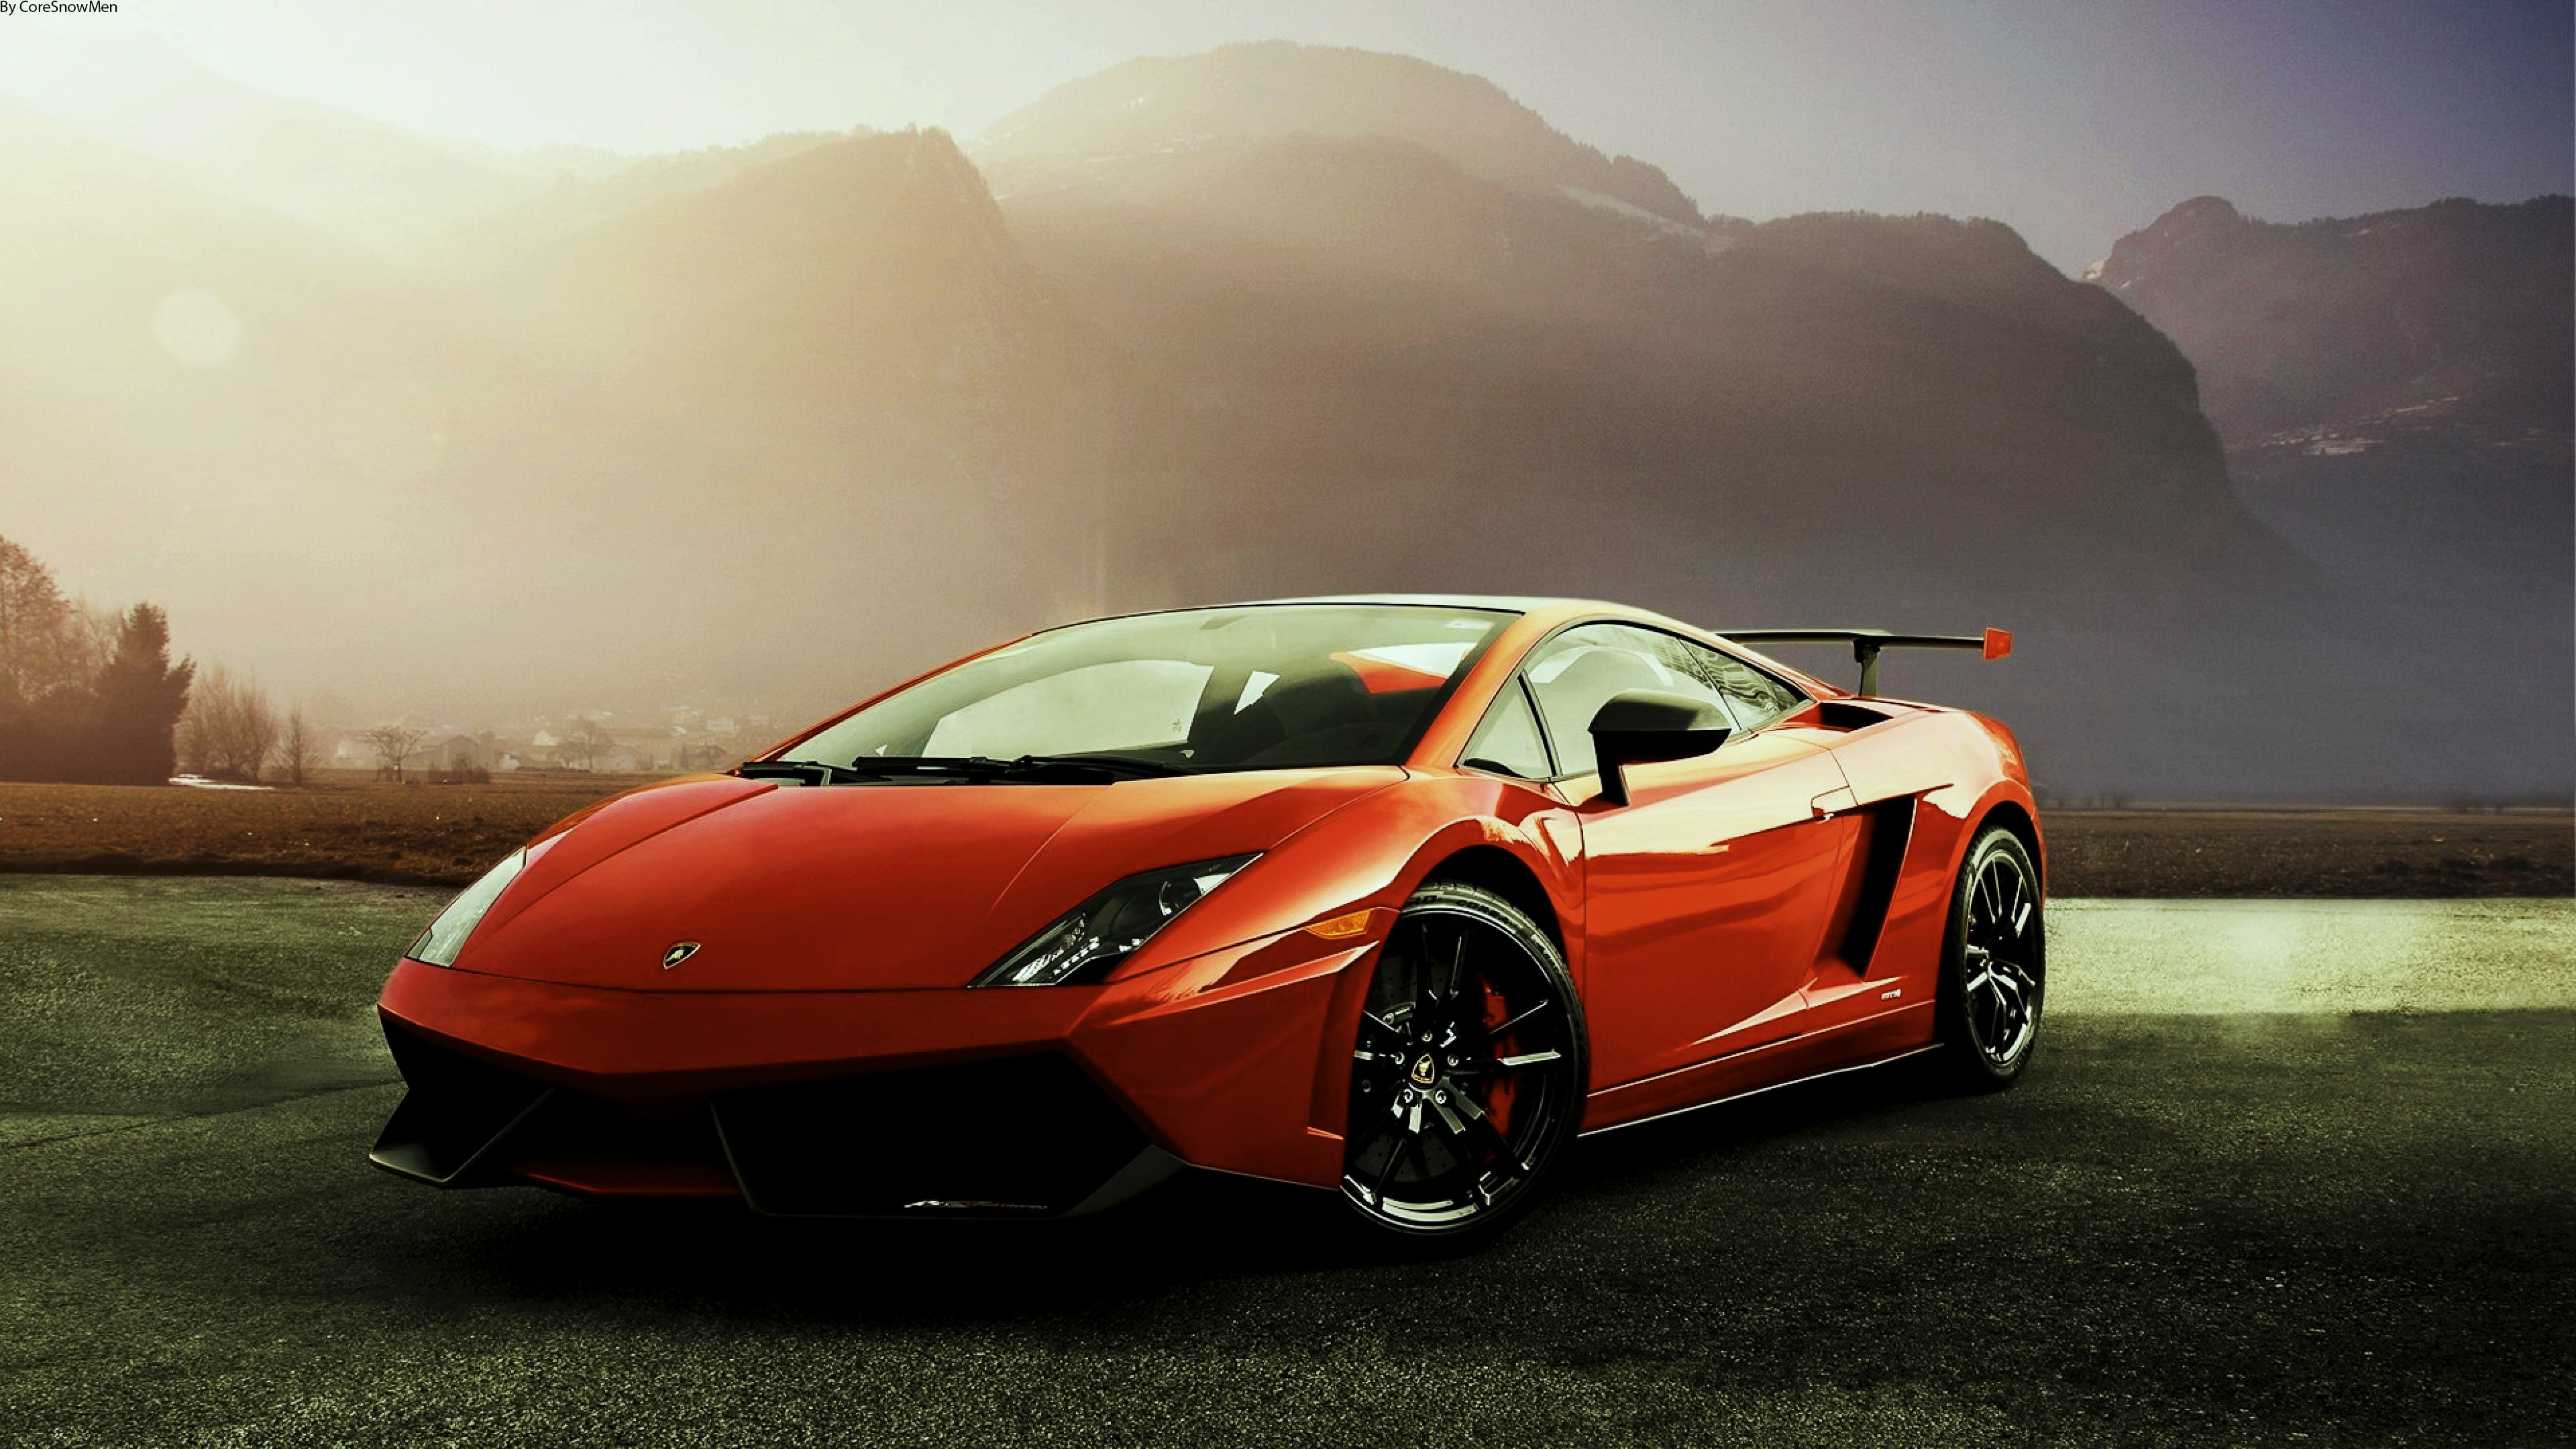 3840x2160 Vehicles - Lamborghini Gallardo Car Lamborghini Wallpaper